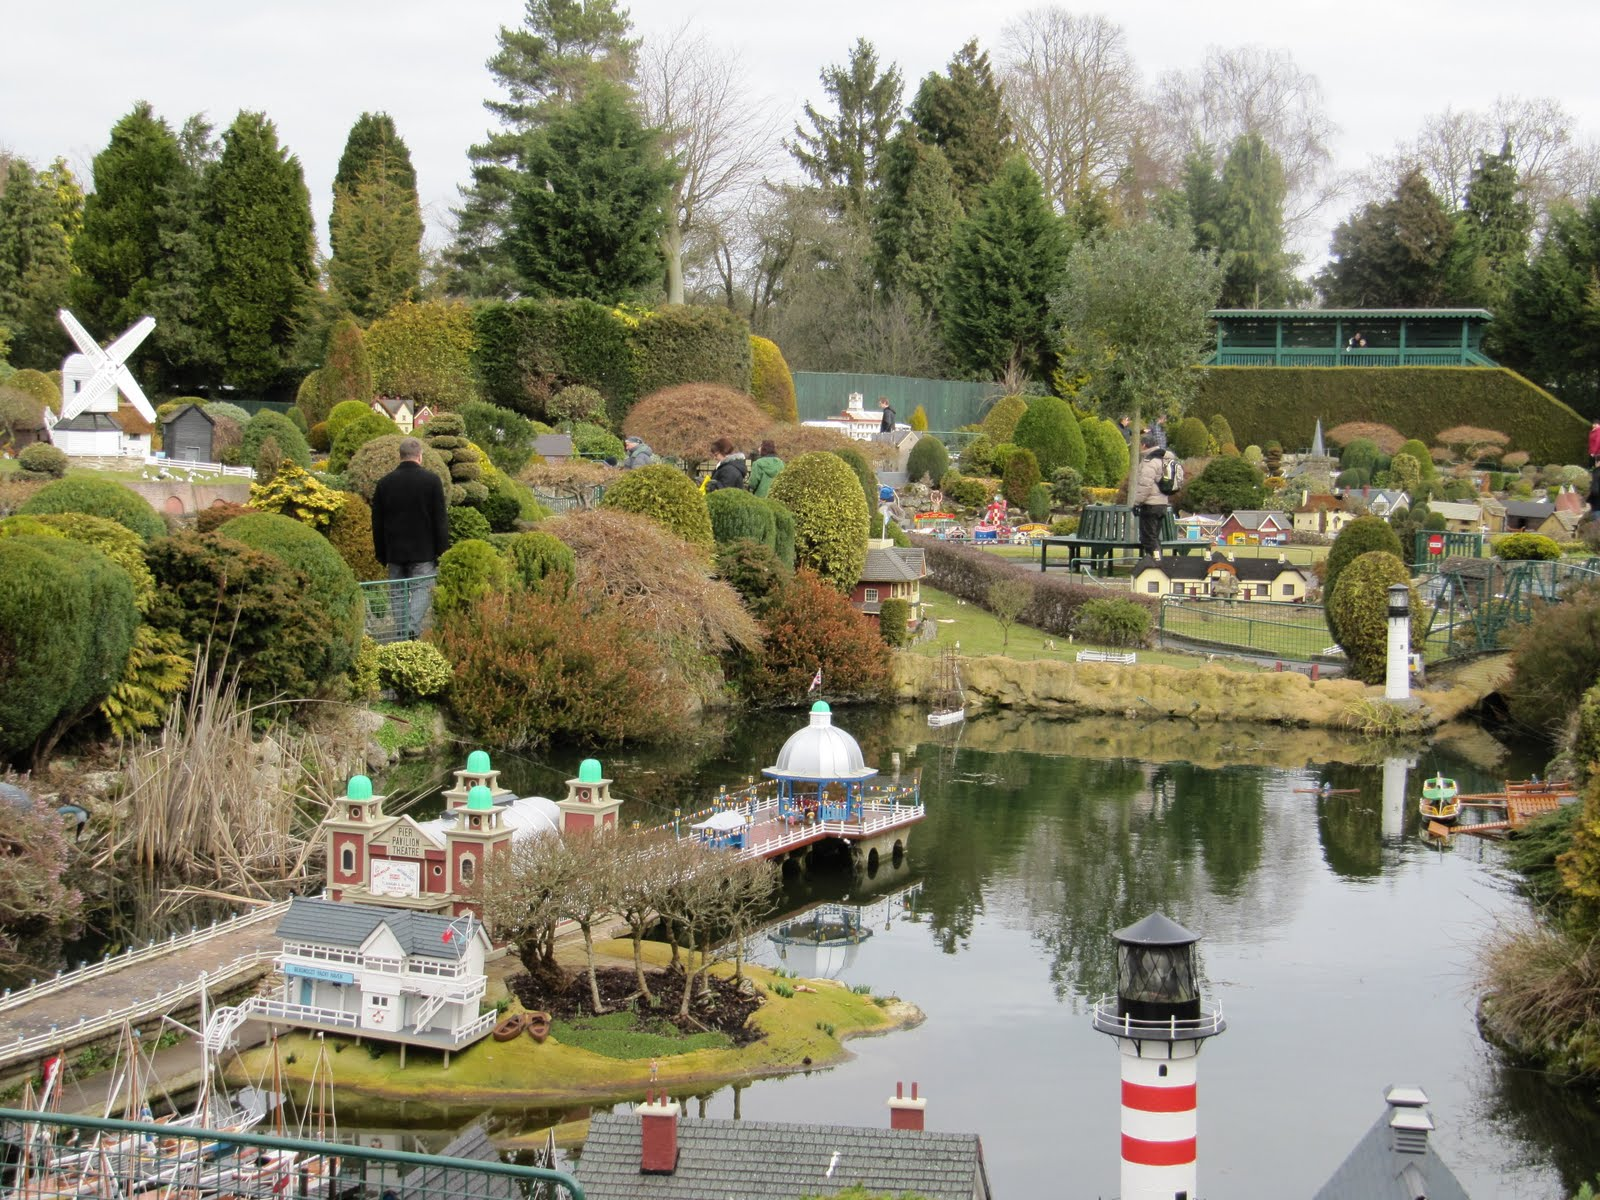 The world's oldest model village, loosely capturing nearby Beaconsfield between the wars. It was opened in and its little inhabitants and fixtures mainly stay true to that period.